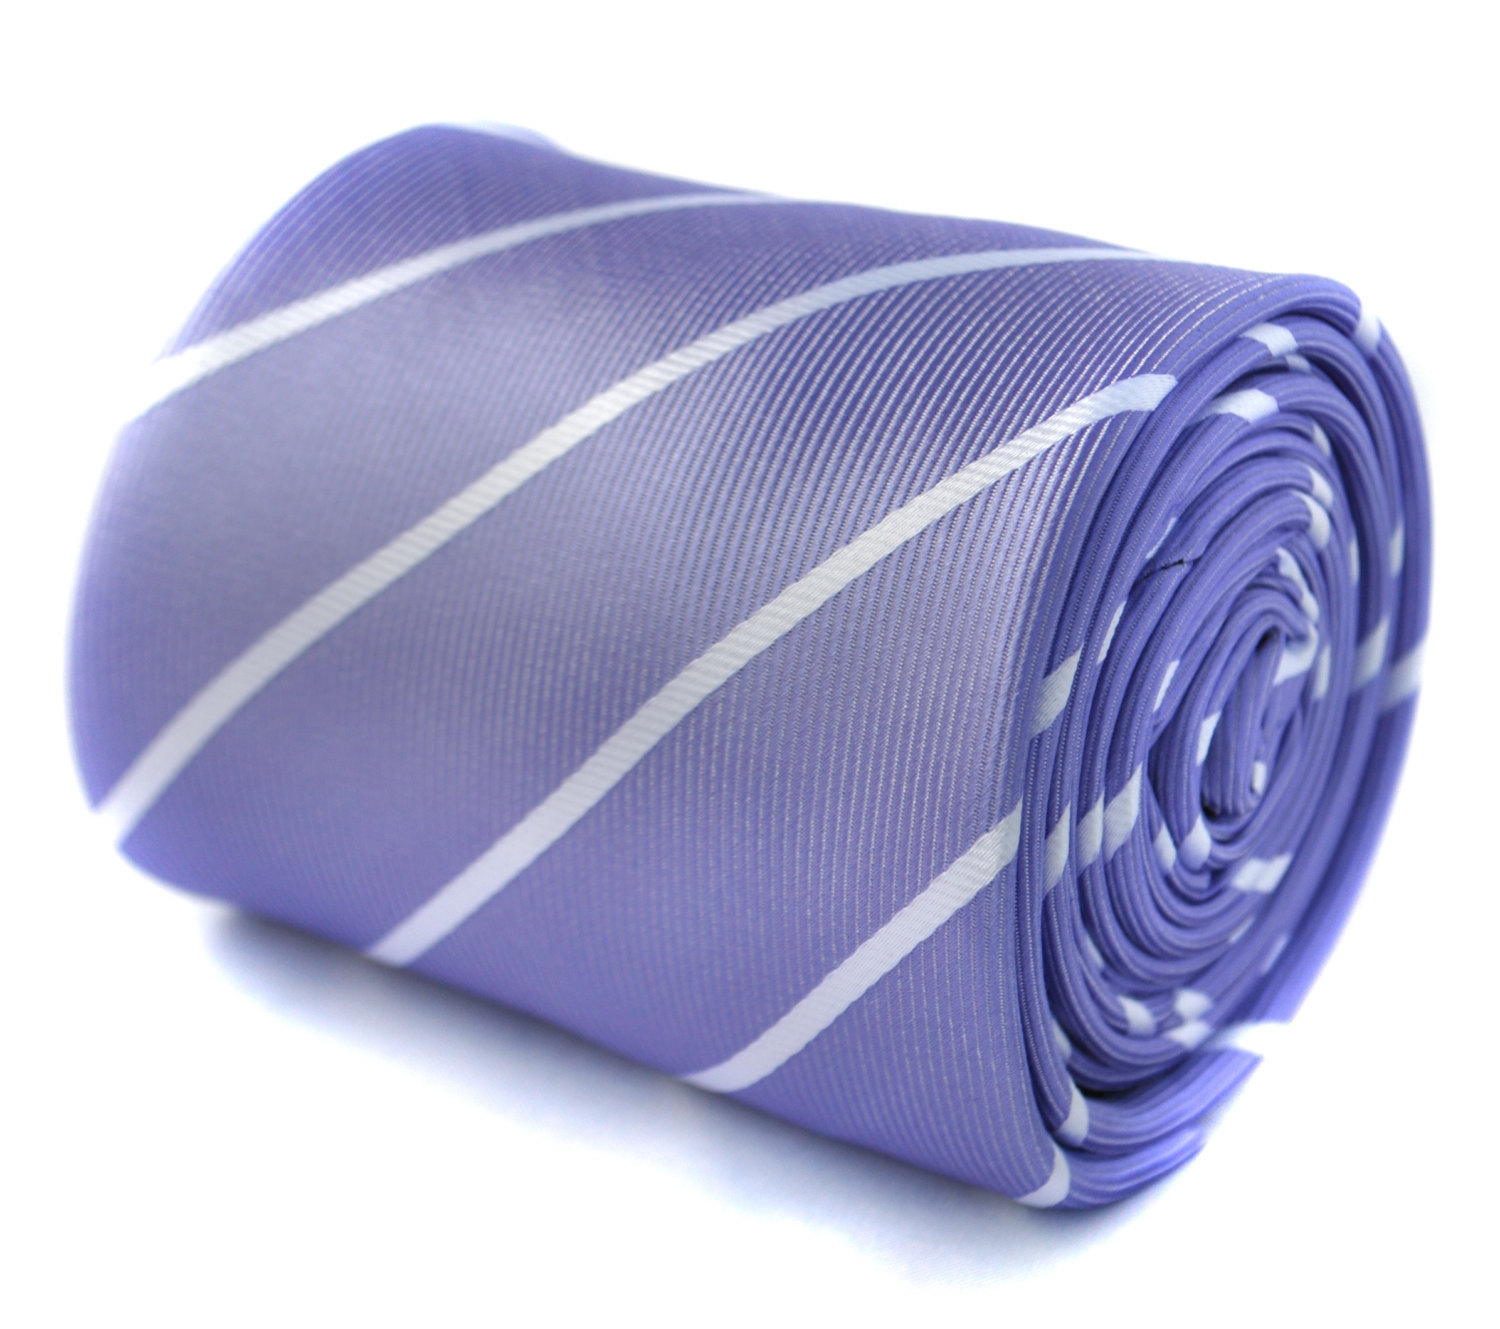 lilac purple and white thin club stripe tie with signature floral design to the